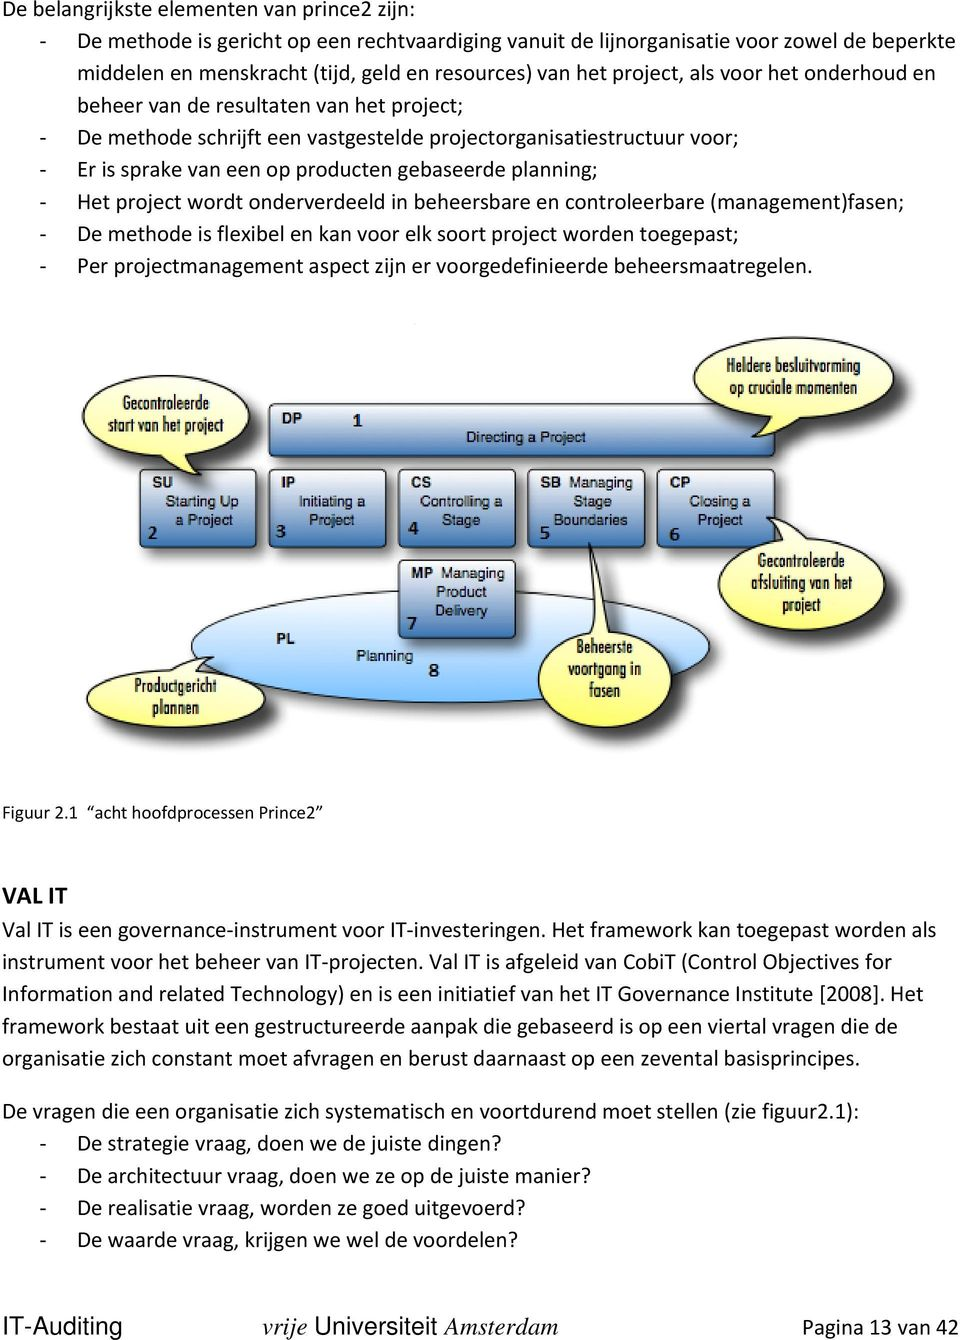 planning; Het project wordt onderverdeeld in beheersbare en controleerbare (management)fasen; De methode is flexibel en kan voor elk soort project worden toegepast; Per projectmanagement aspect zijn